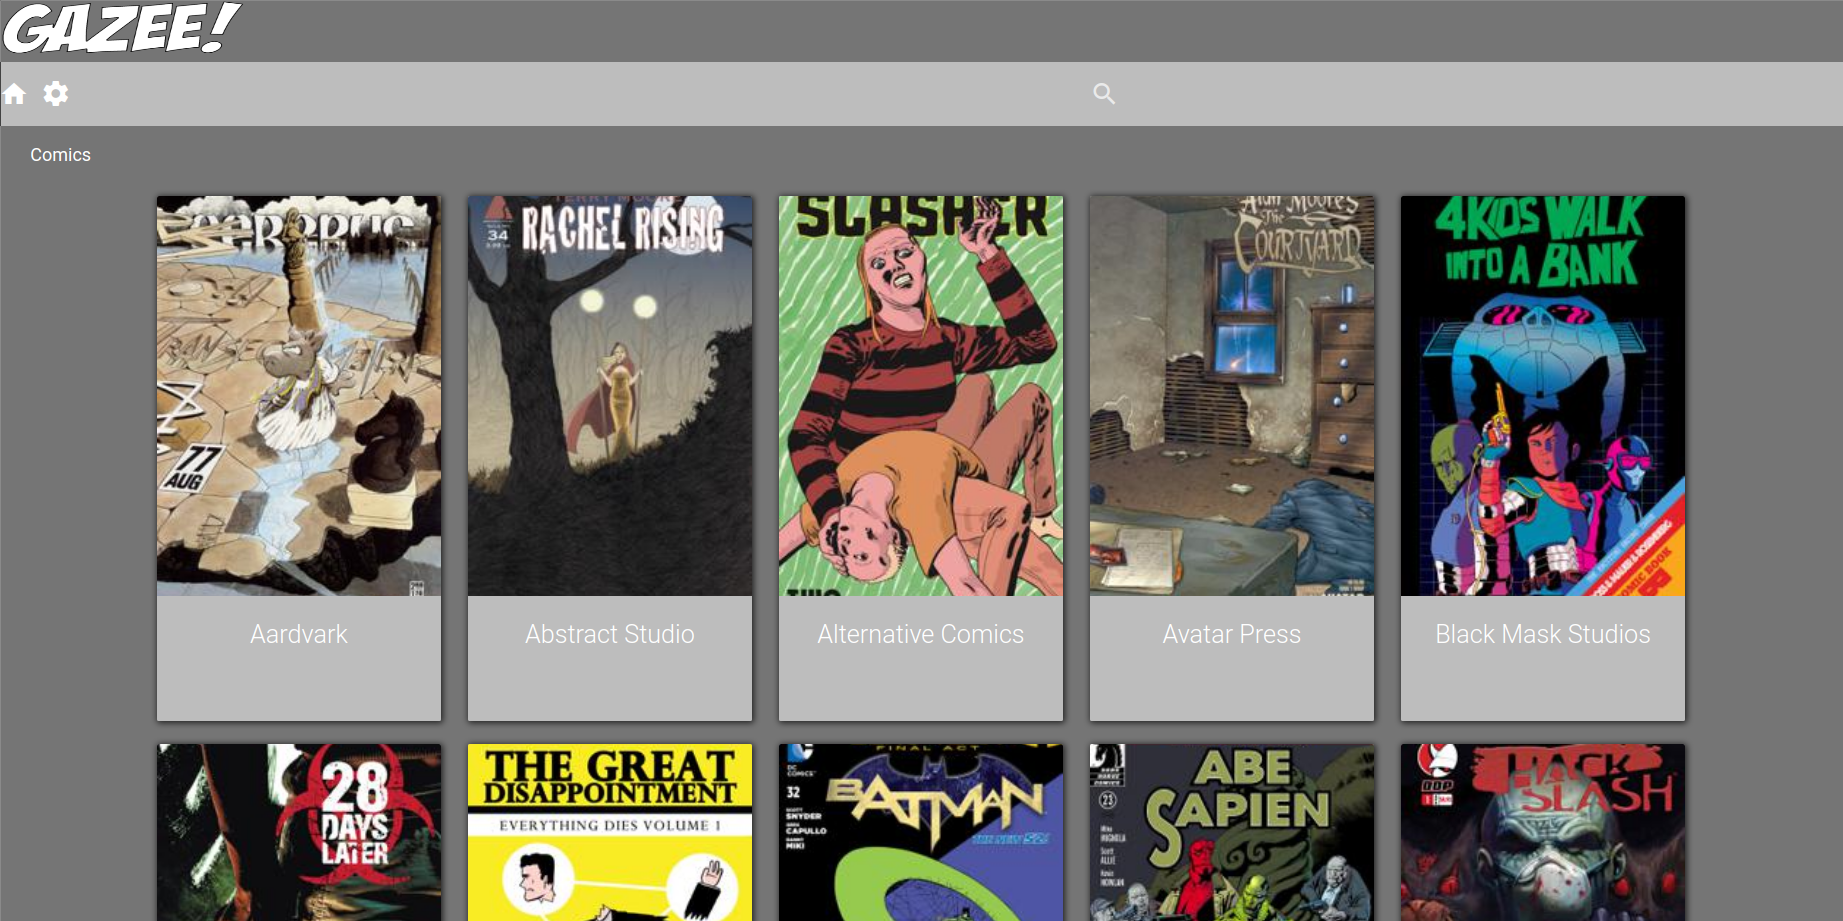 GitHub - hubbcaps/gazee: A WebApp for reading your comics